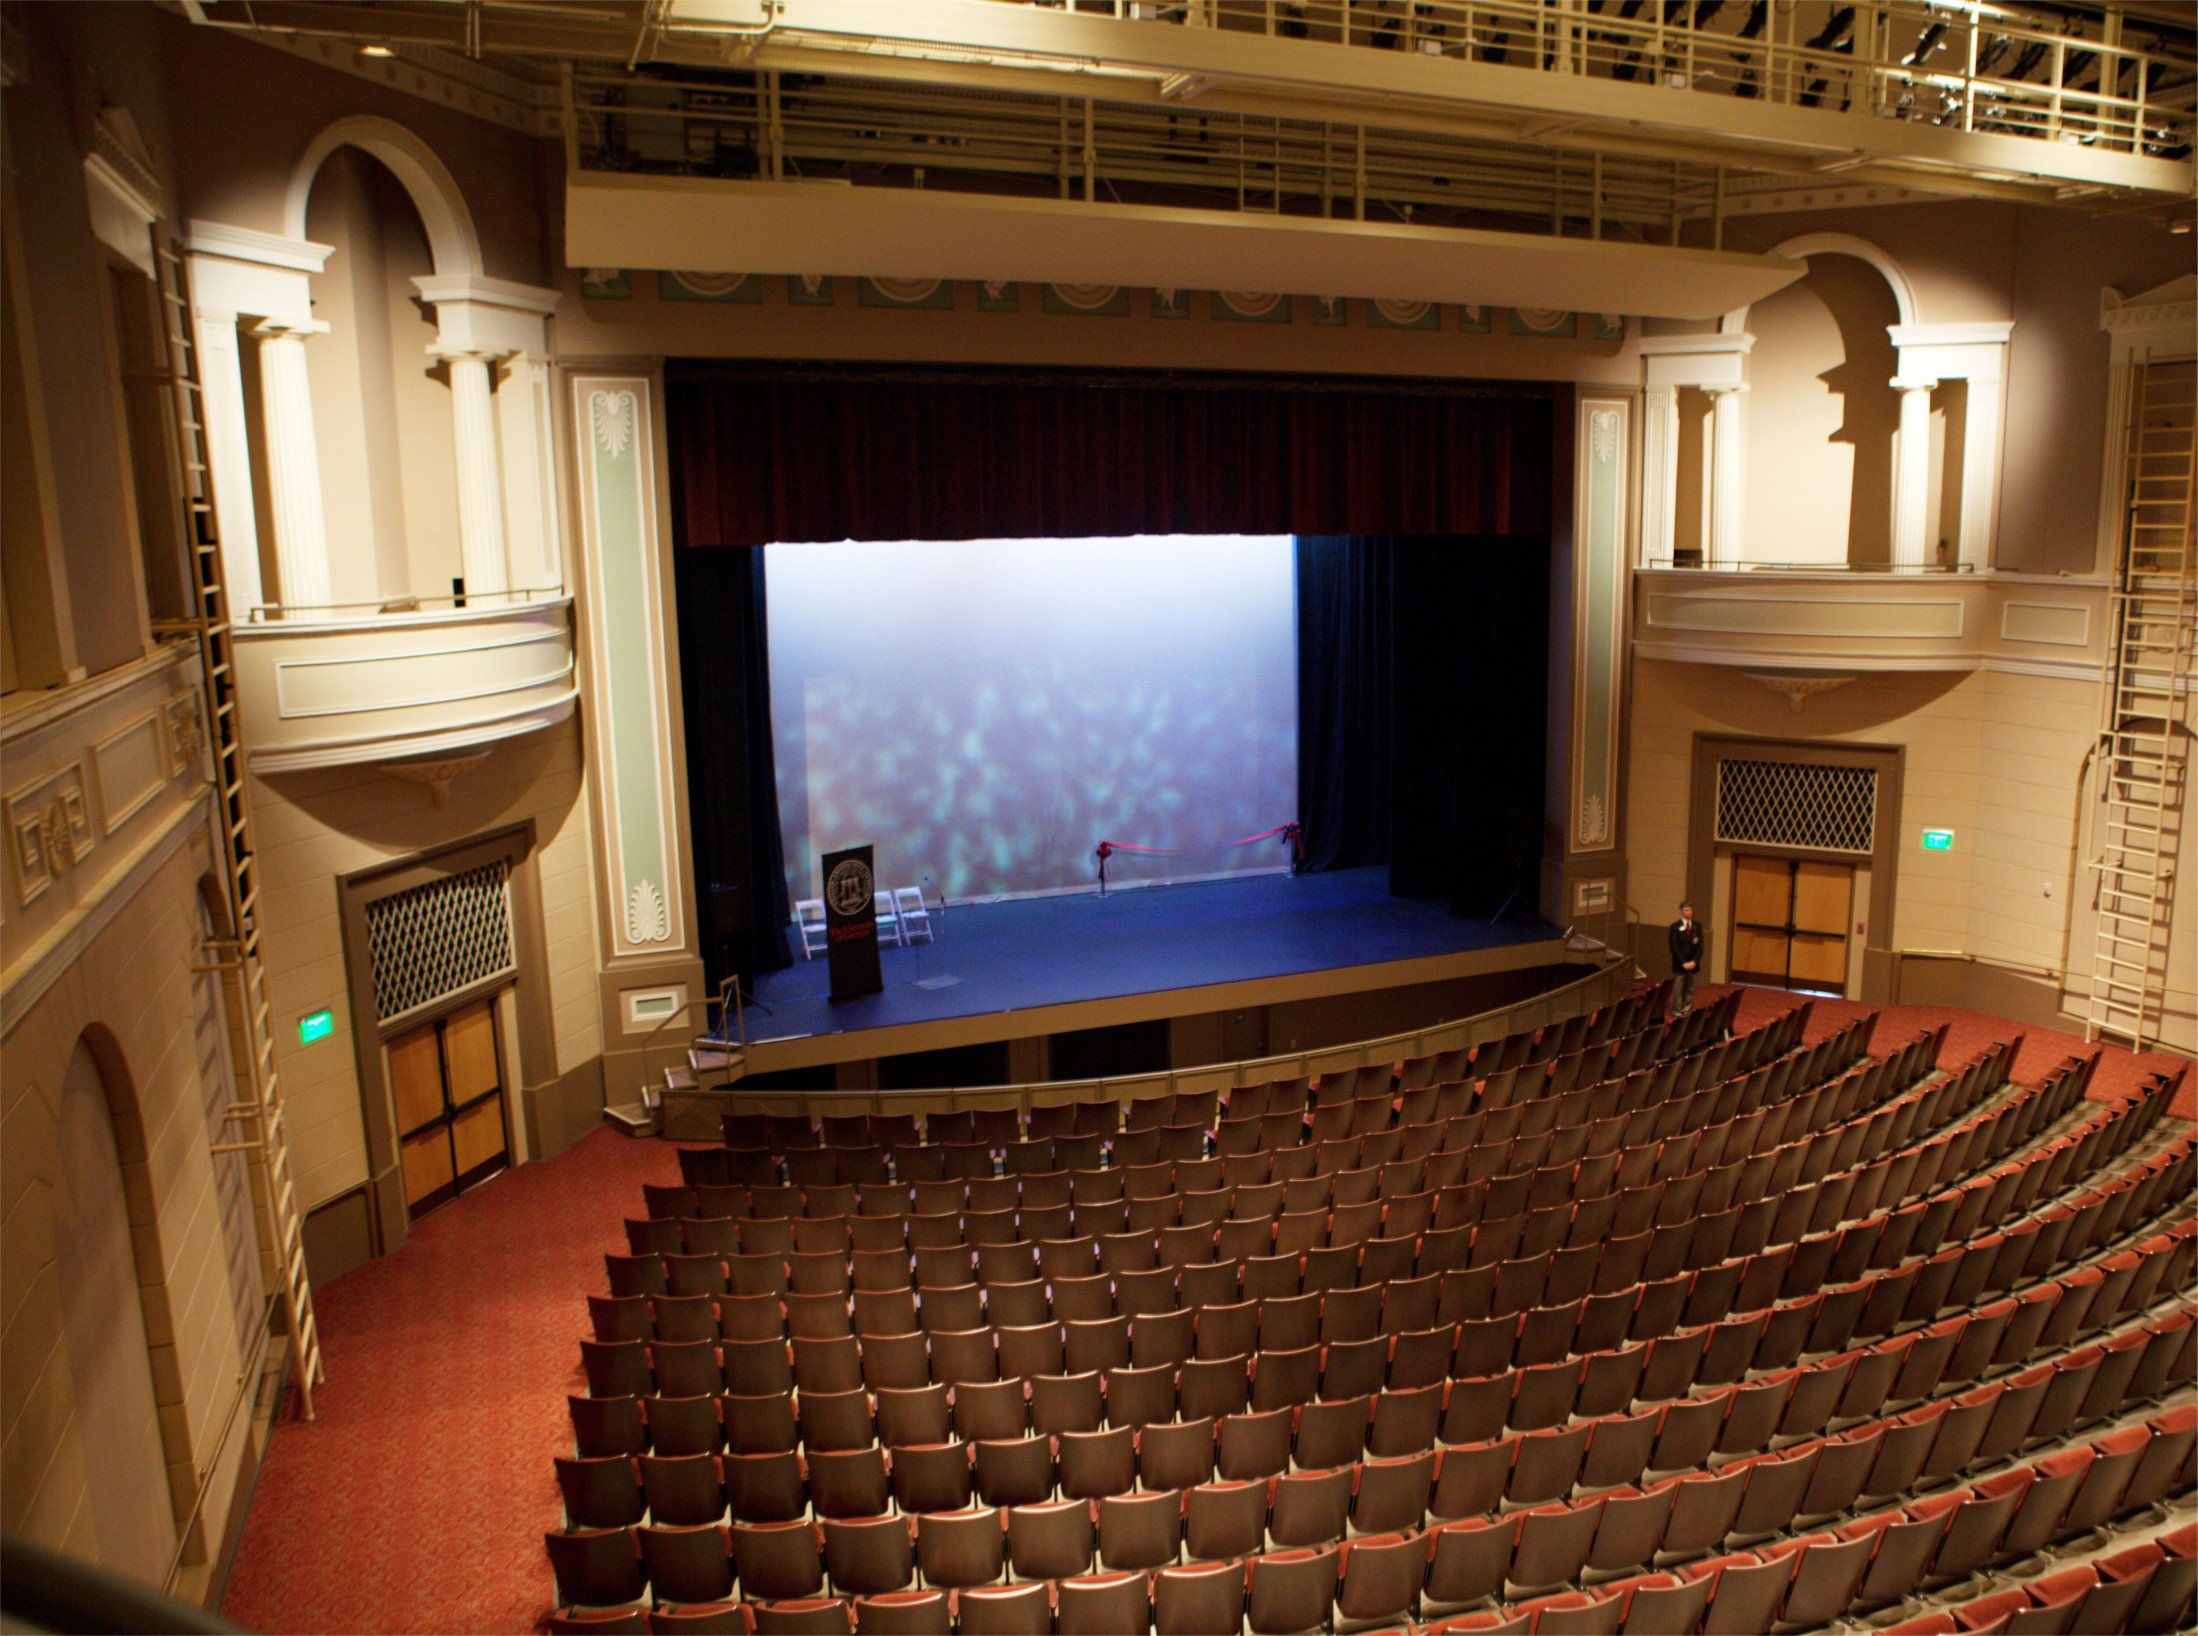 Fine Arts Building Main Stage post 2009 renovations.